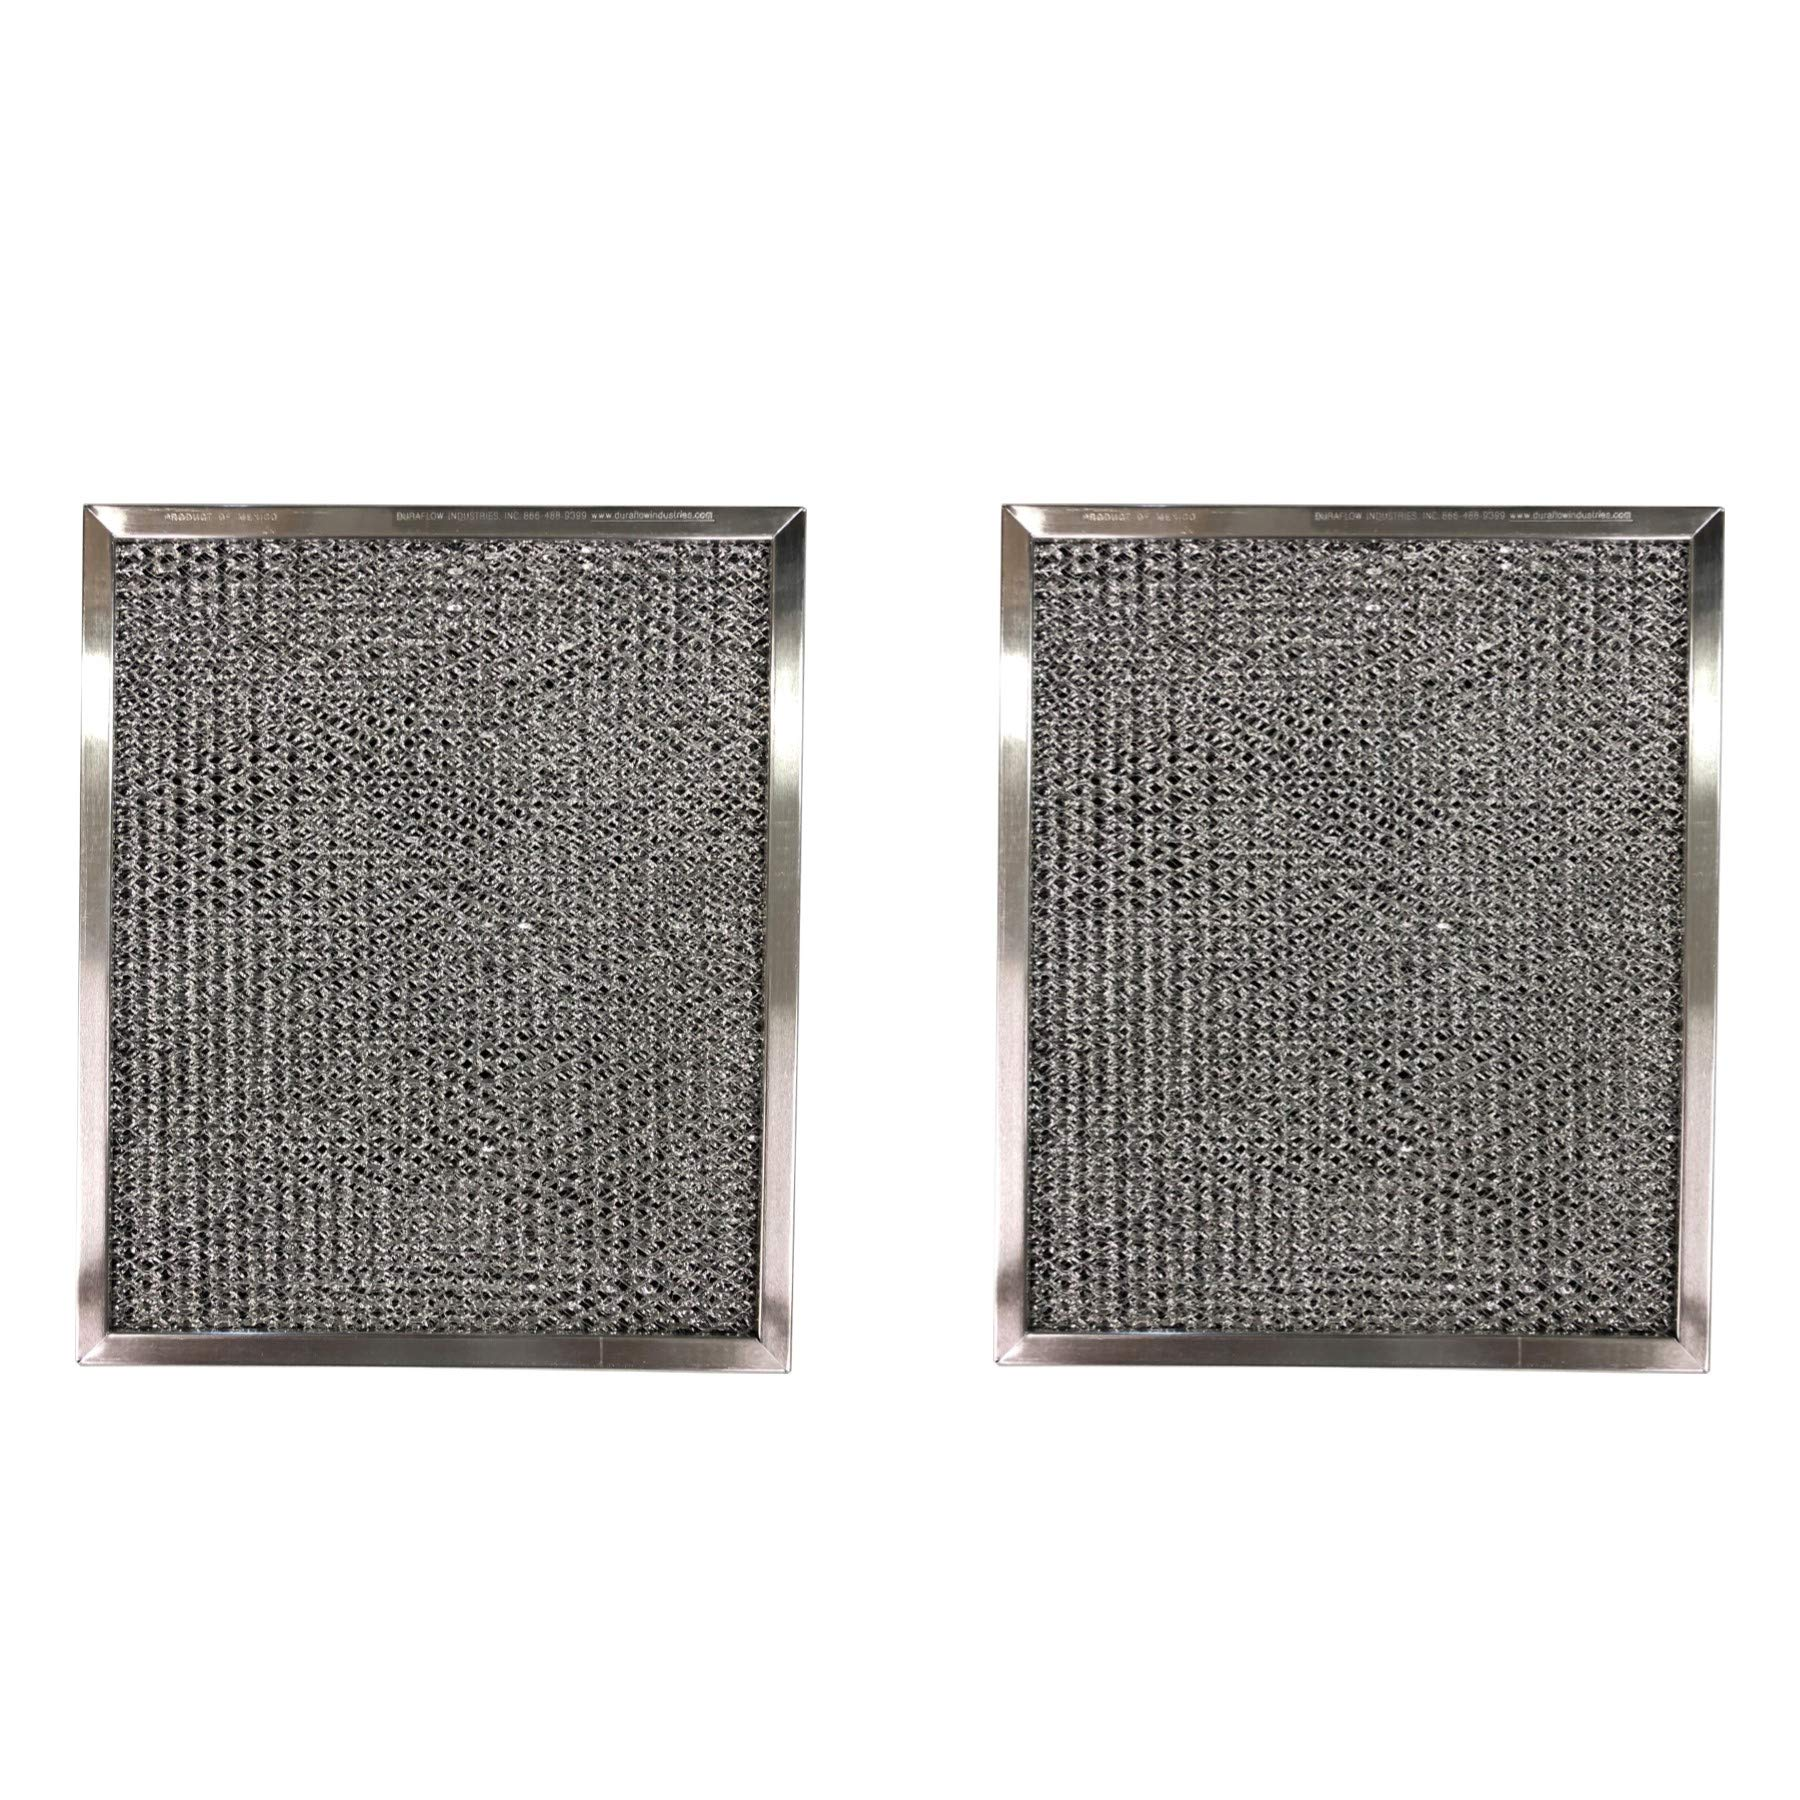 Replacement Aluminum Filters Compatible with Sears/Kenmore 50185,GC 7506,  8 3/4 x 10 1/2 x 3/8 (2 P